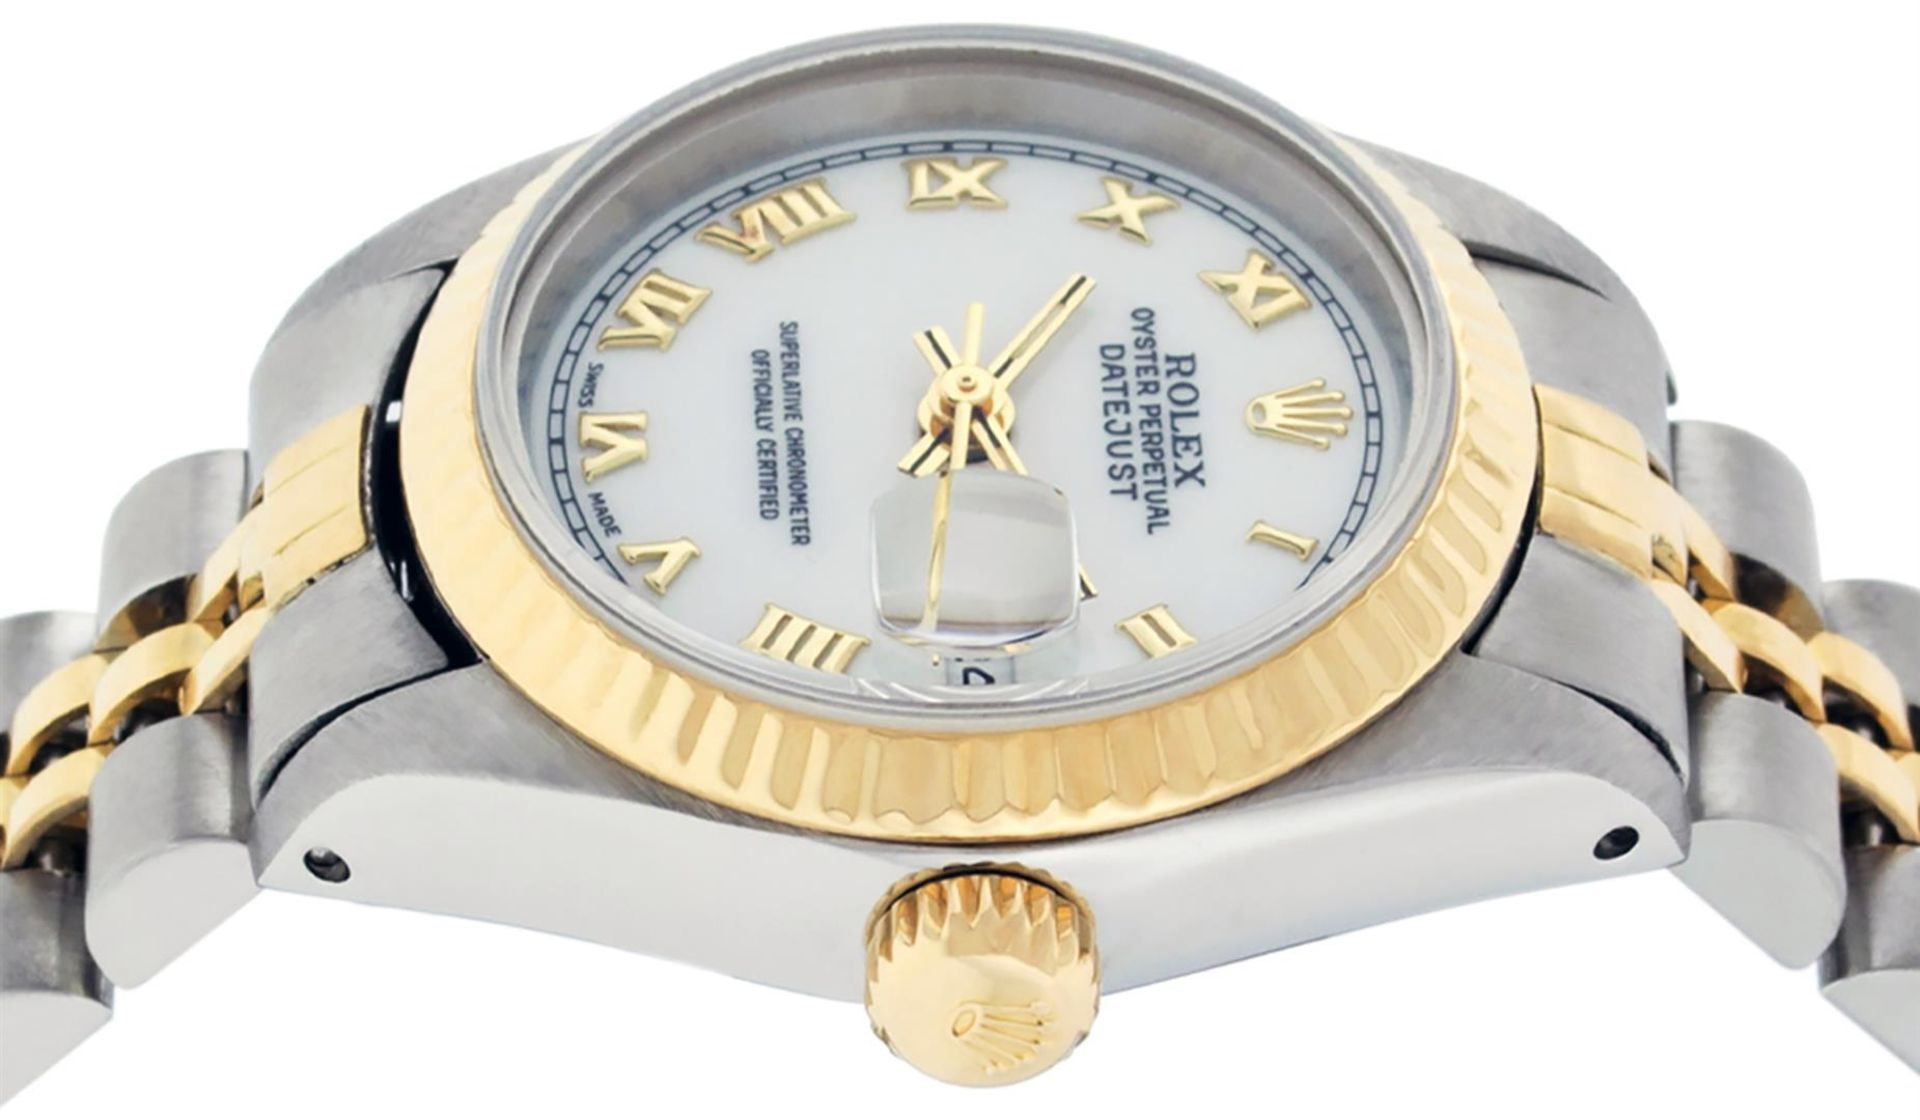 Rolex Ladies 2 Tone White Roman 26MM Datejust Wristwatch - Image 7 of 8